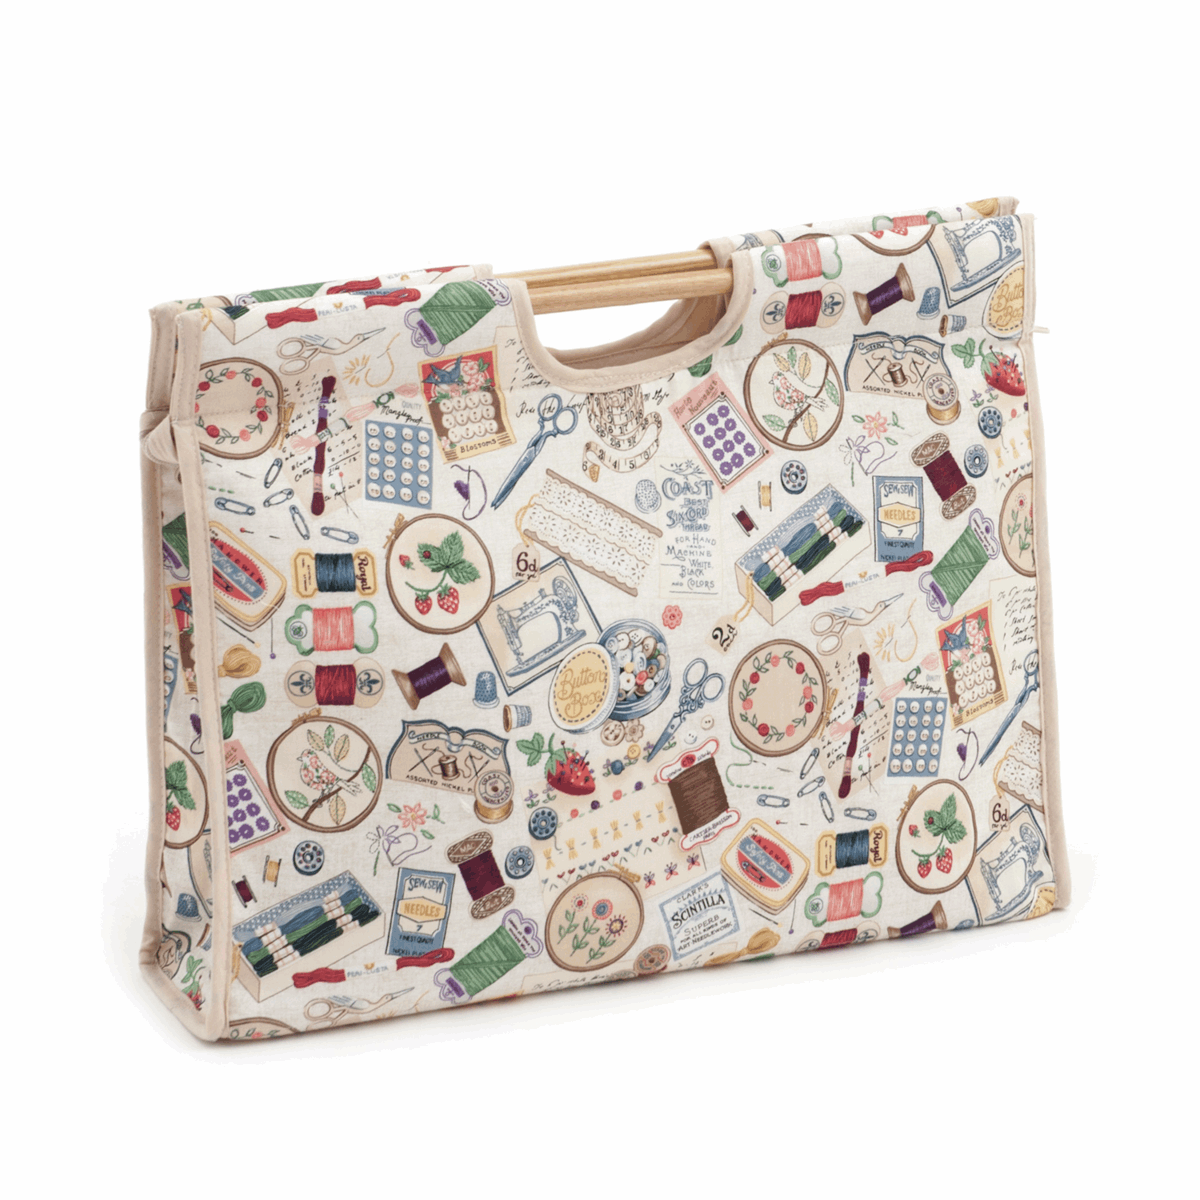 Picture of Craft Bag with Wooden Handles: Sewing Notions